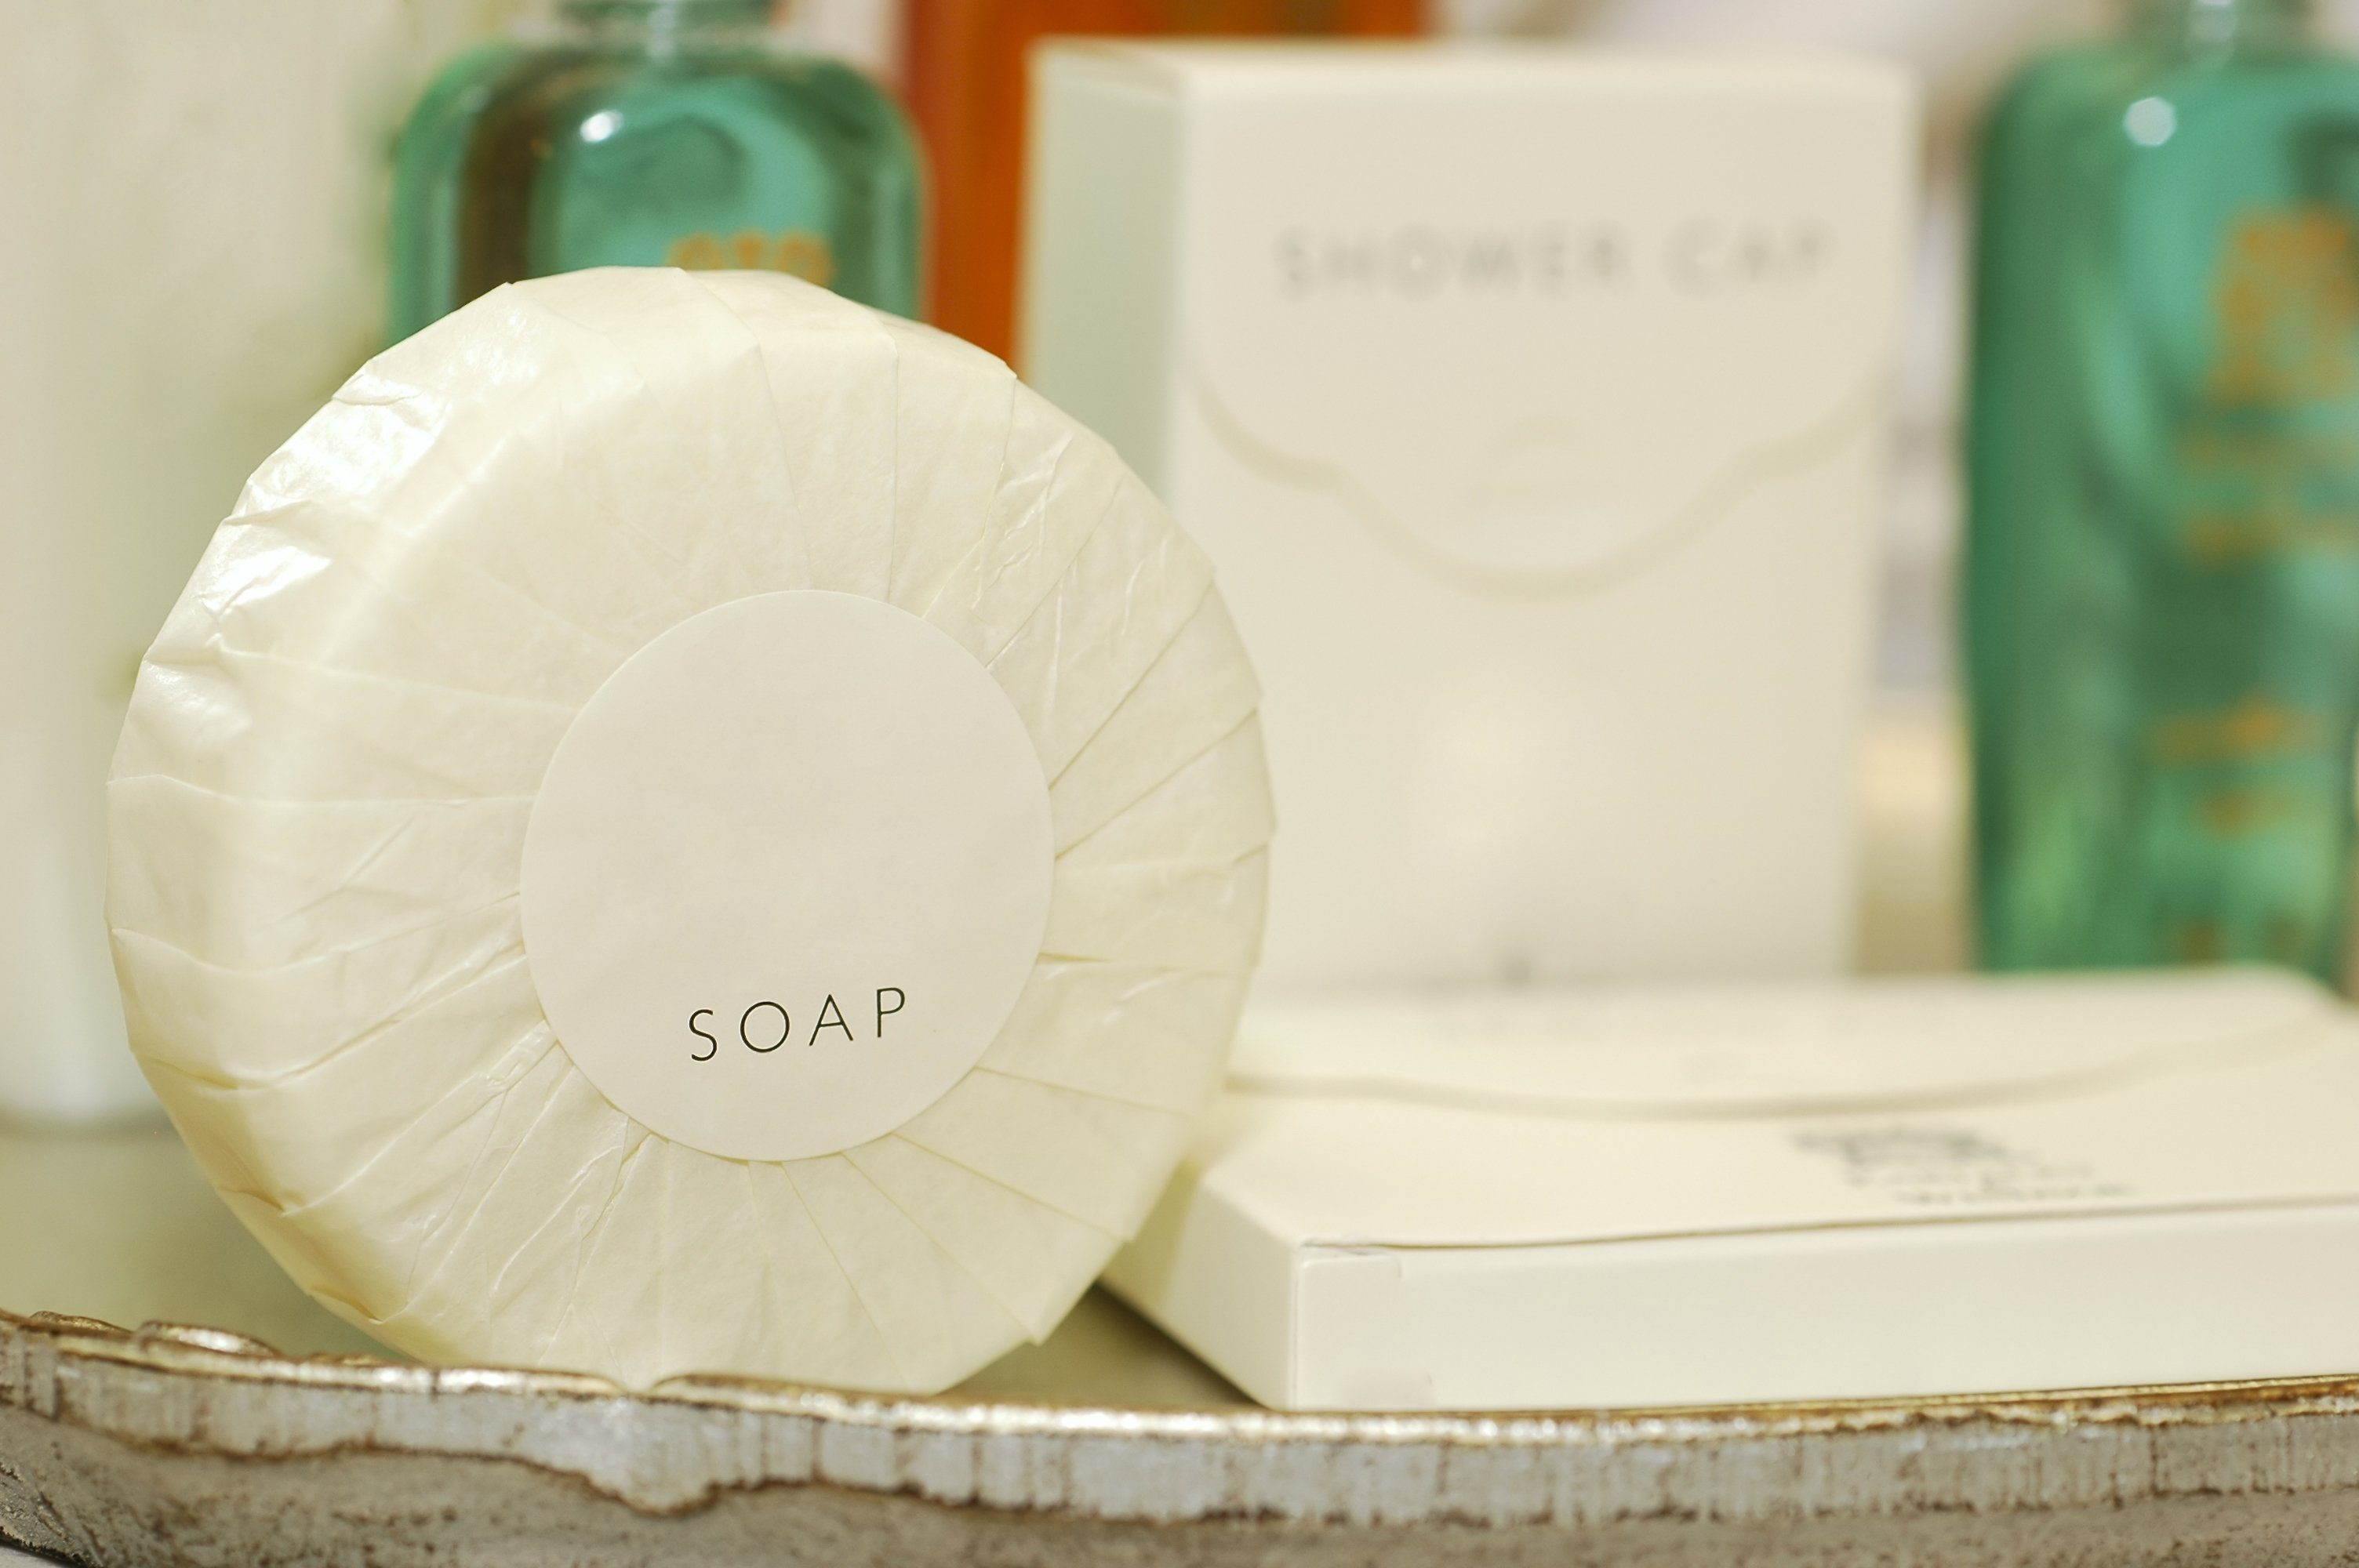 Soap and other toiletries in a hotel bathroom